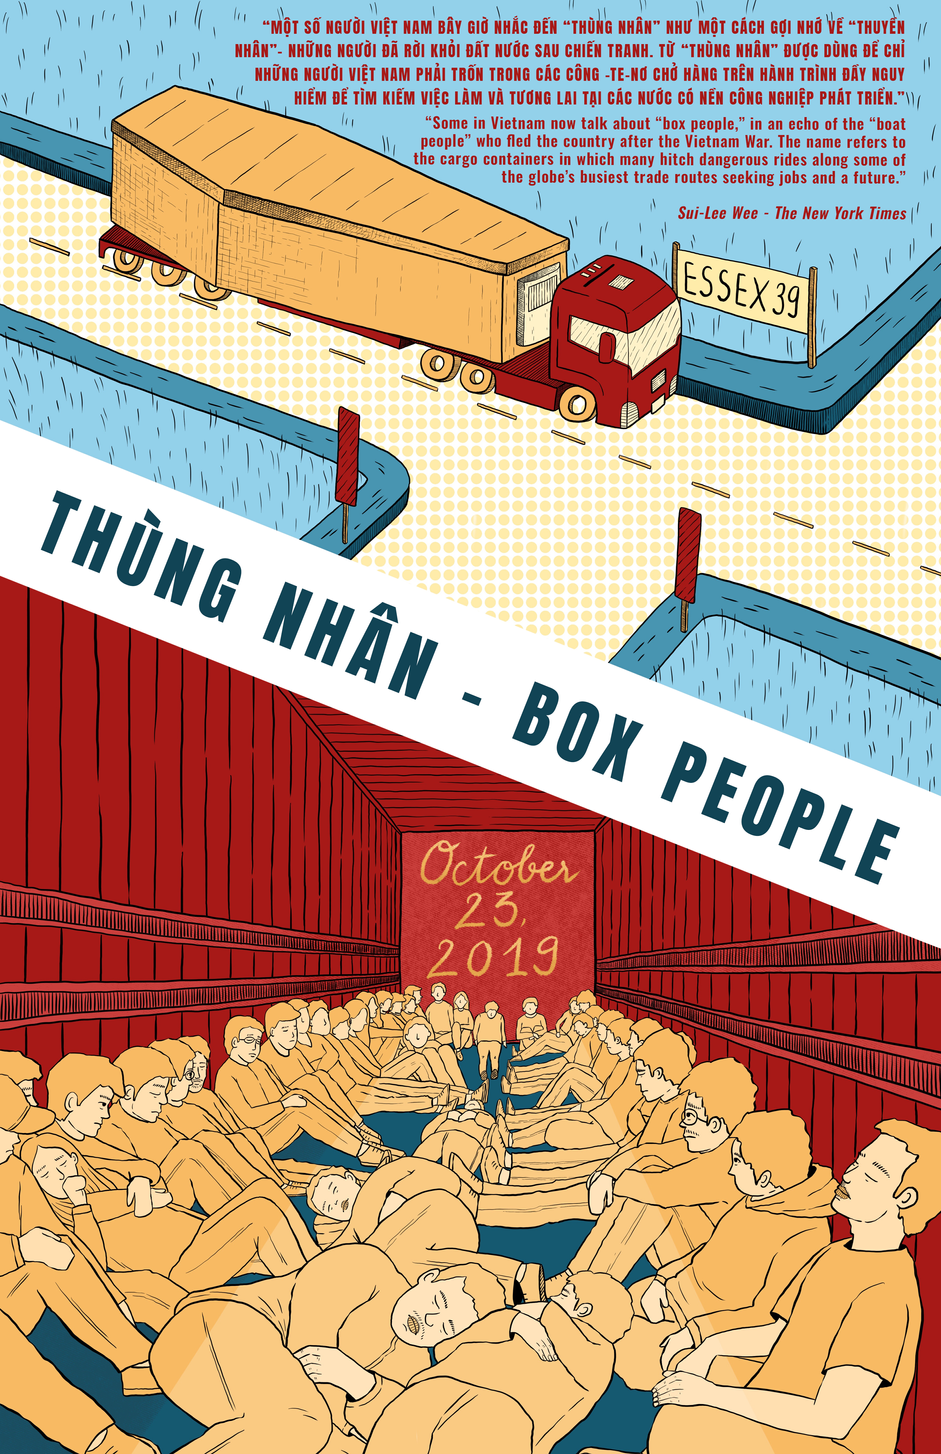 box people 1.png